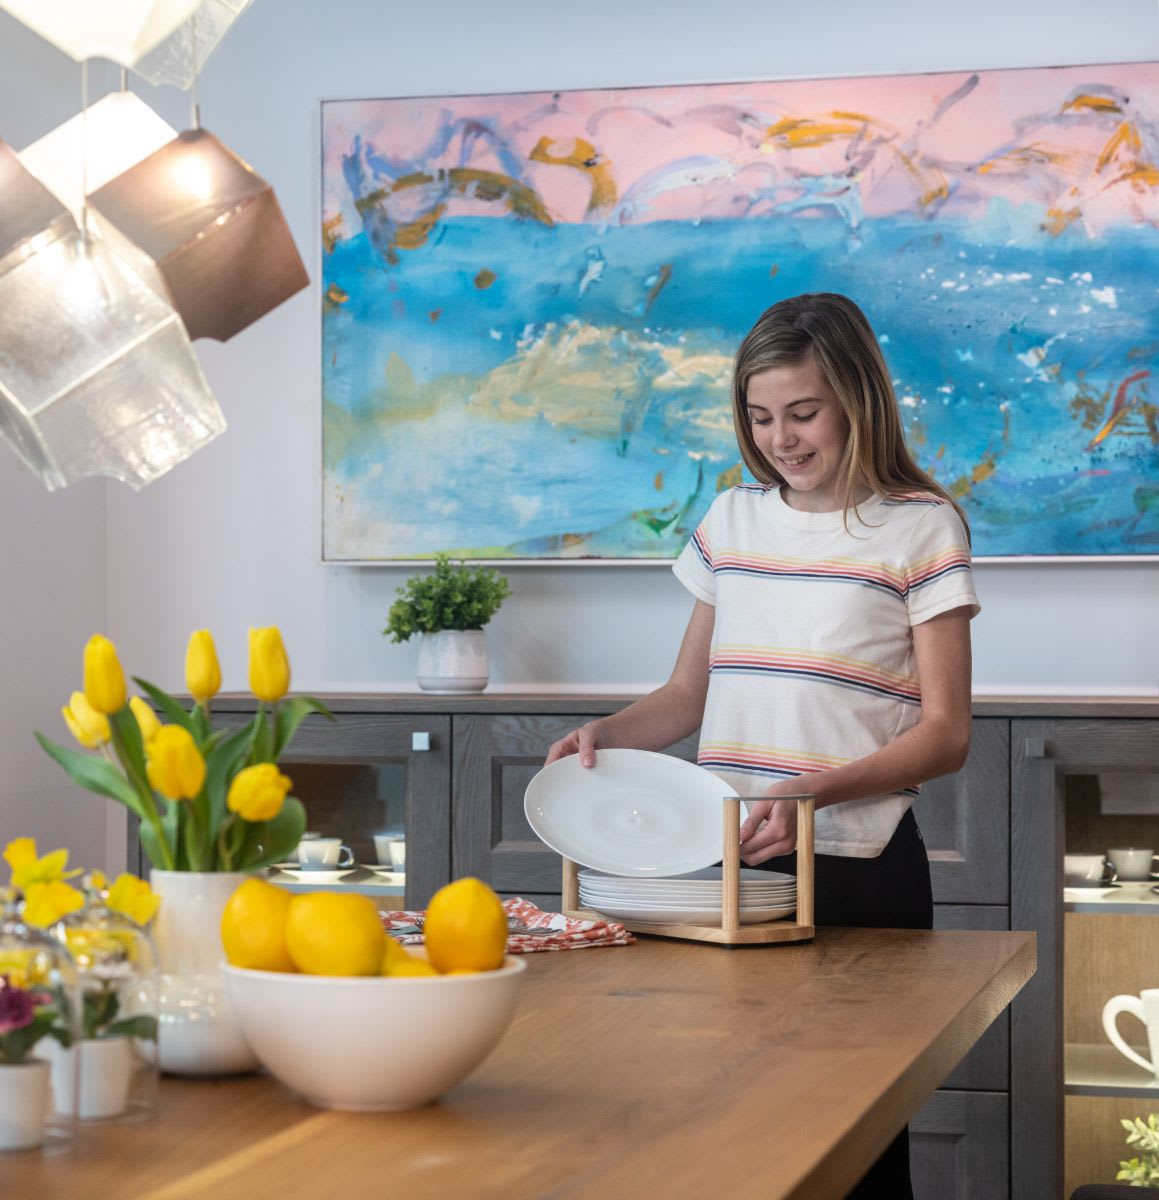 girl sets the table with plates from a boxtec plate caddy that protects plates from sliding while in the drawer and conveniently totes the plates to the table for easy setting